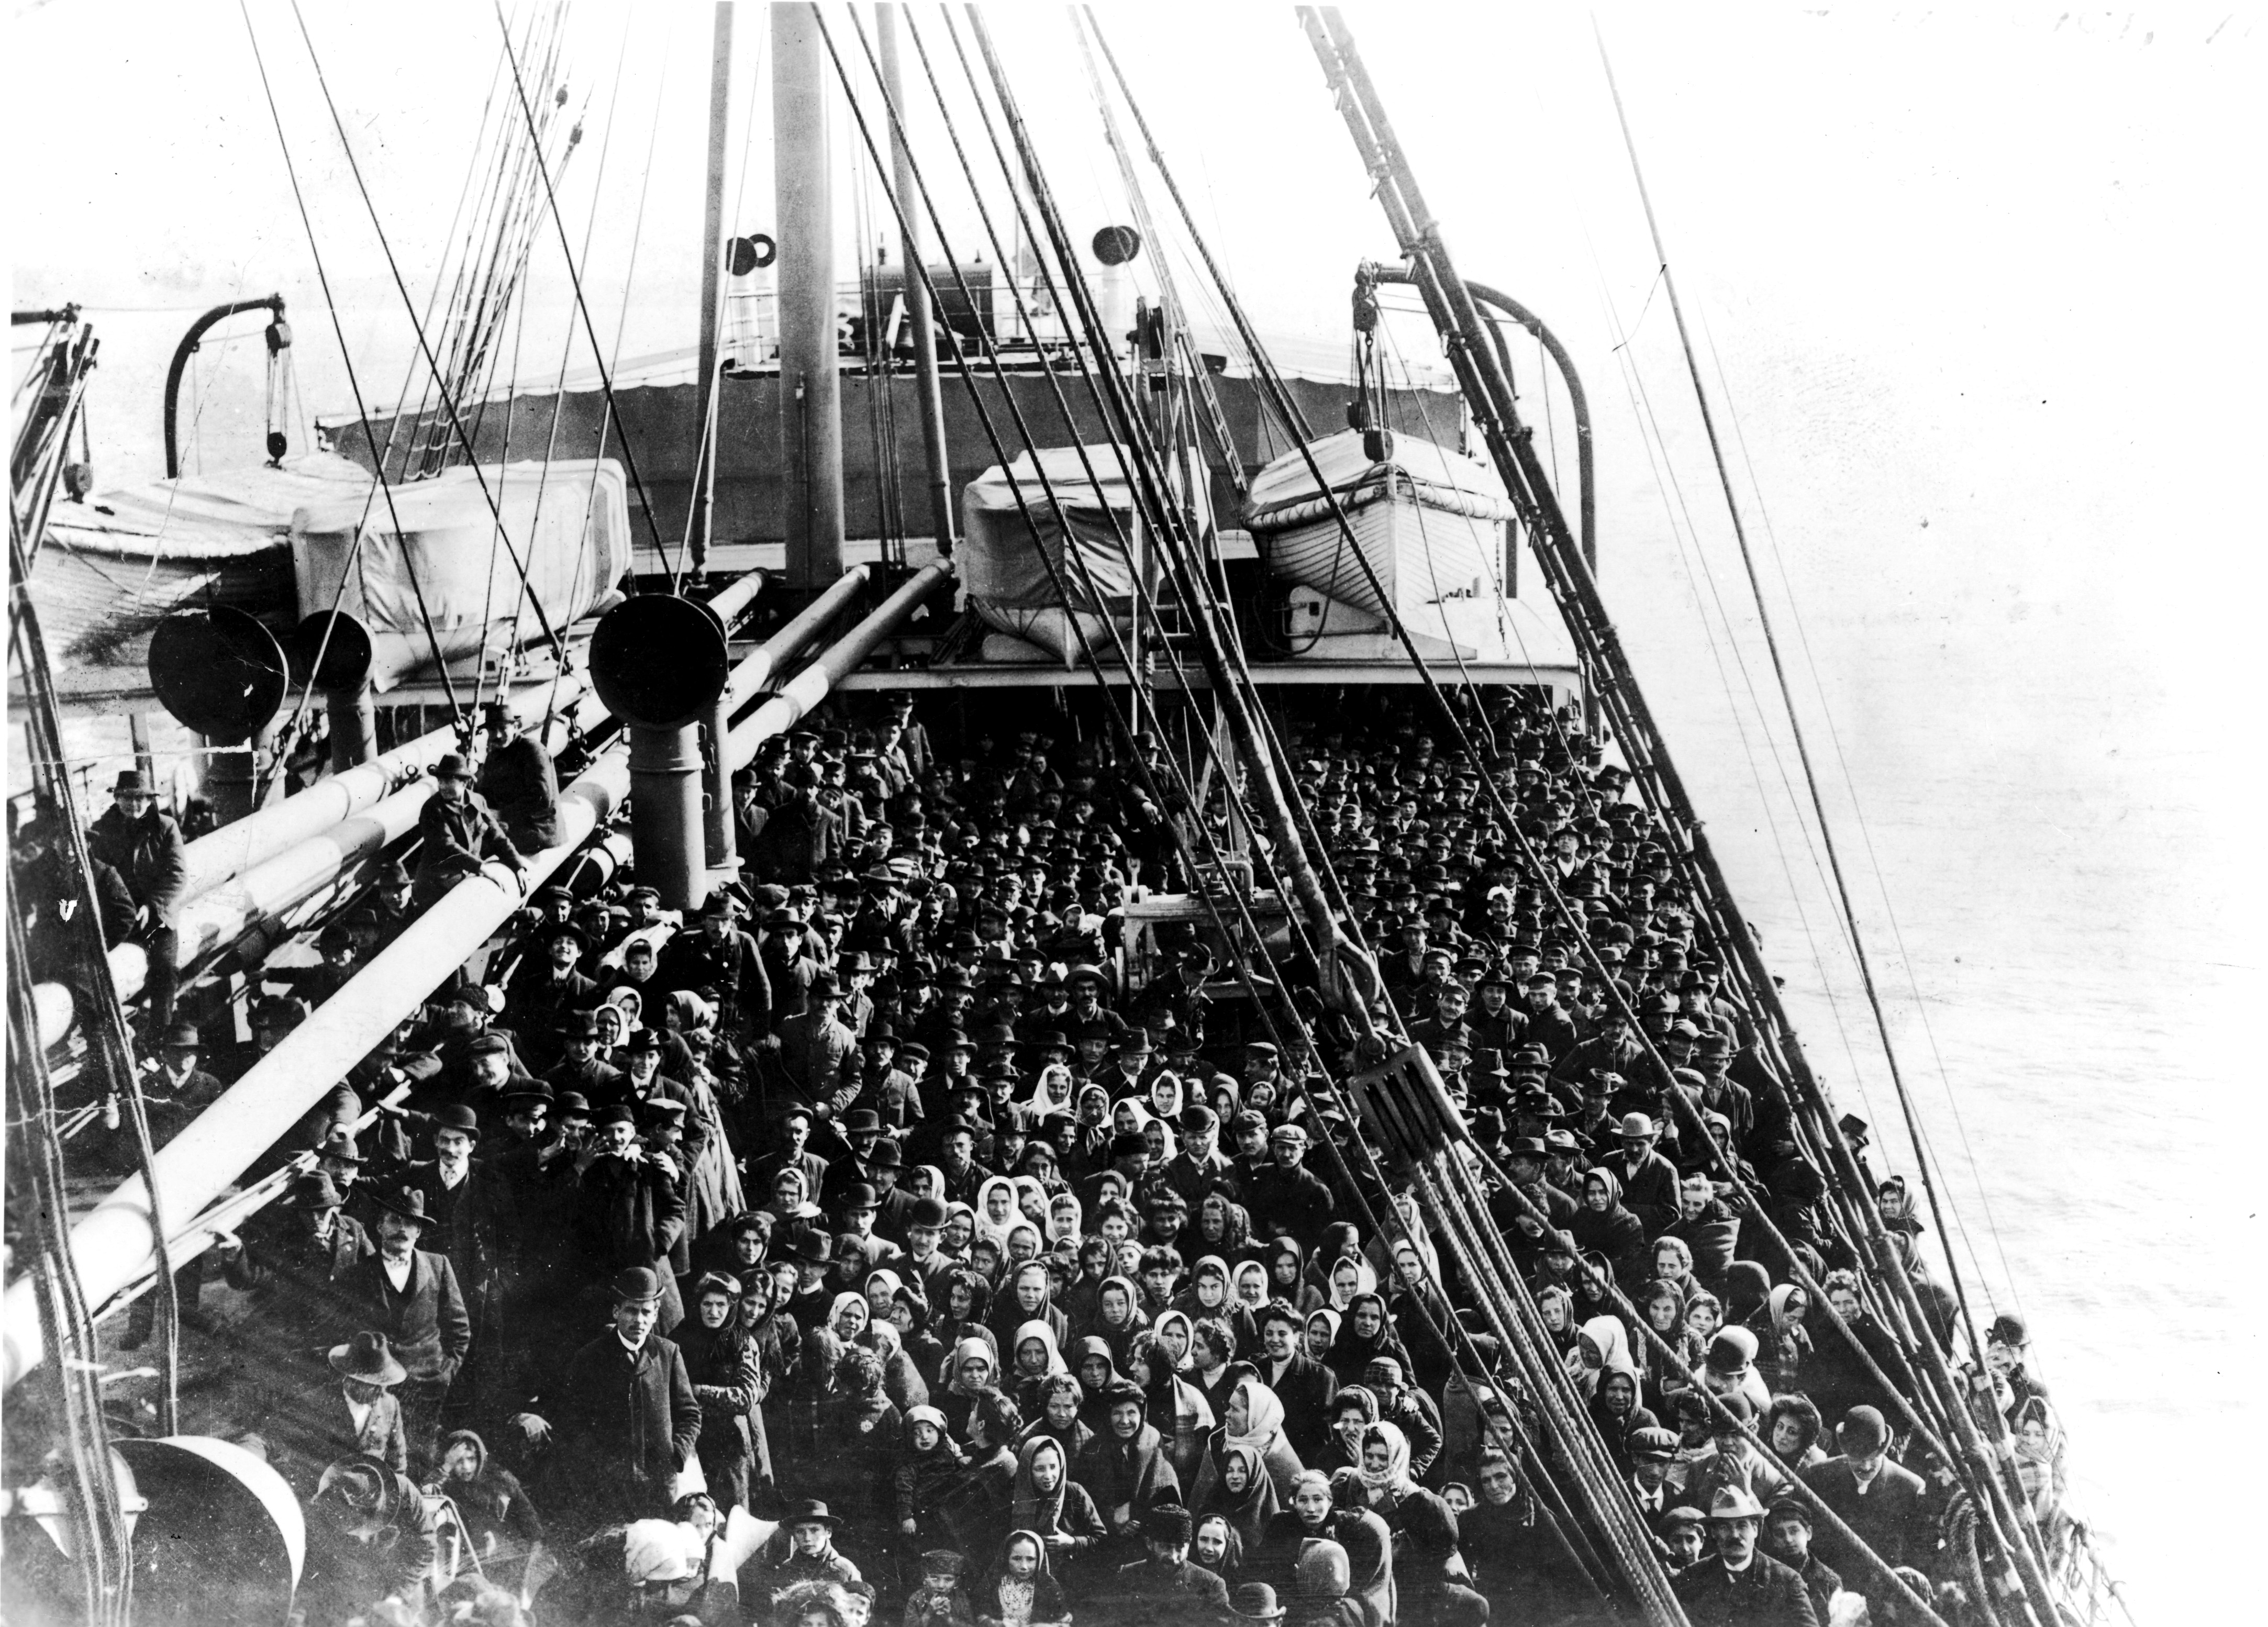 immigrants coming to america - photo #33